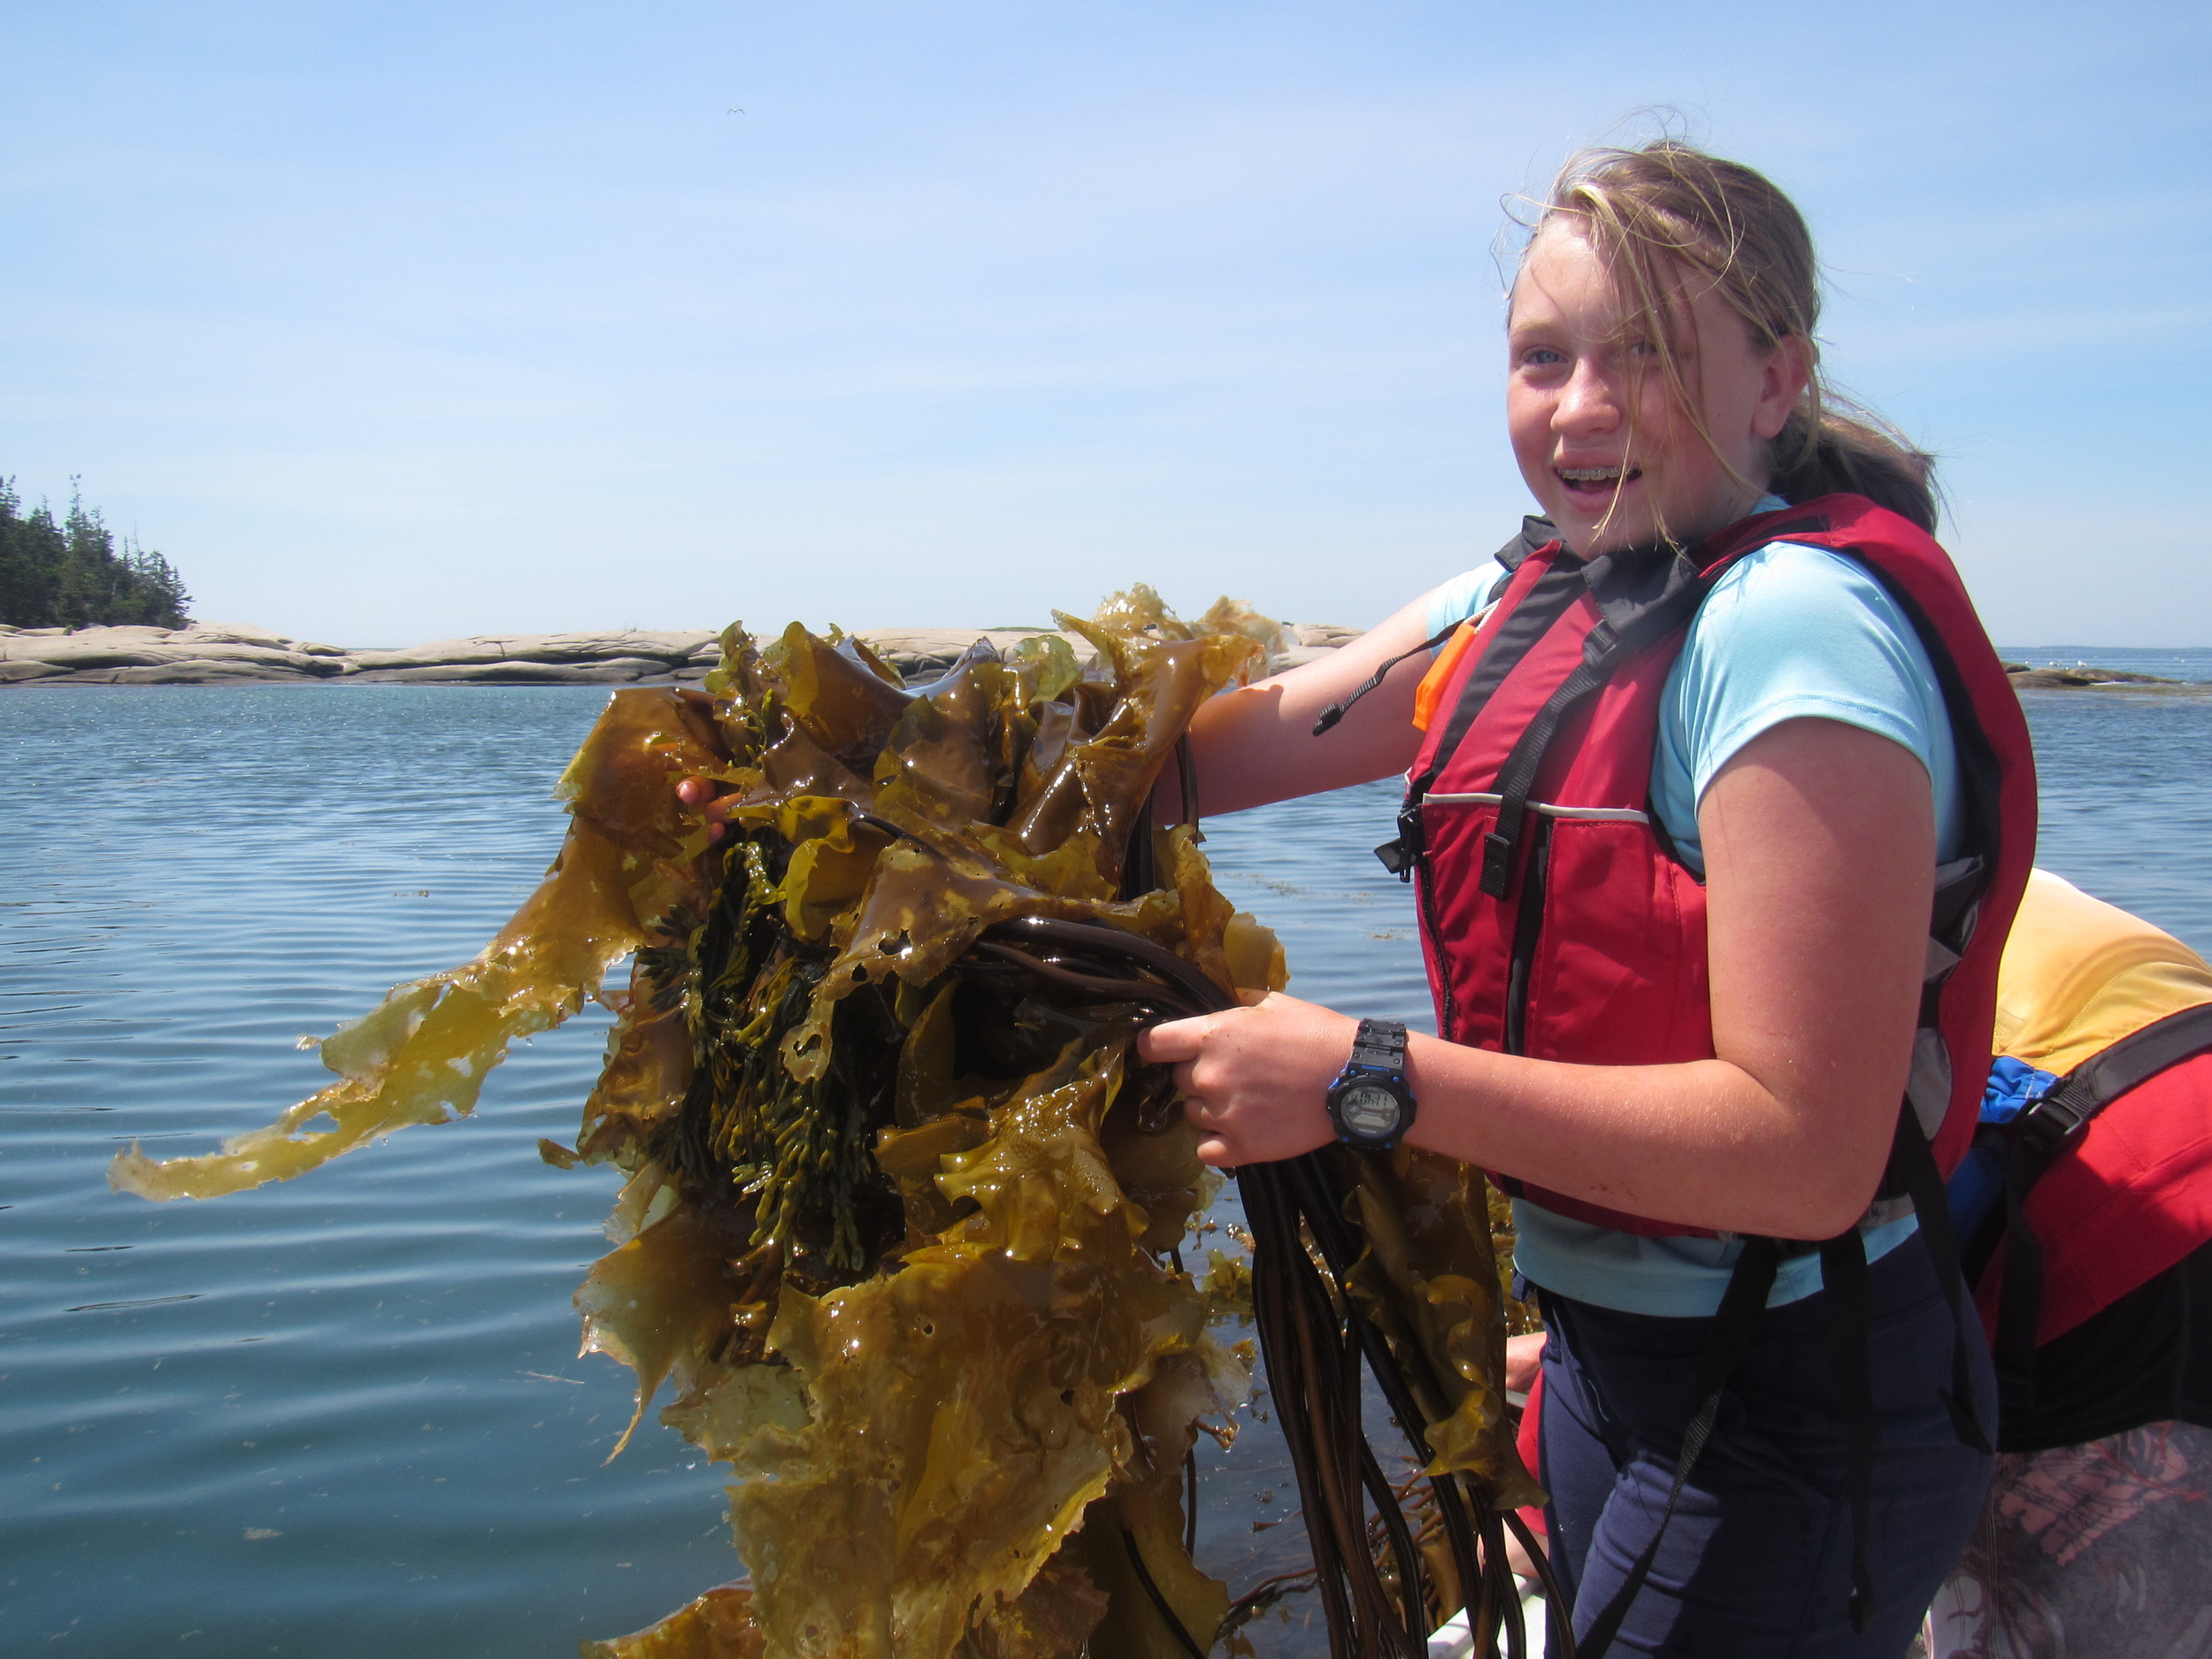 MS Marine Ecology student getting into the kelp harvest on Hurricane Island